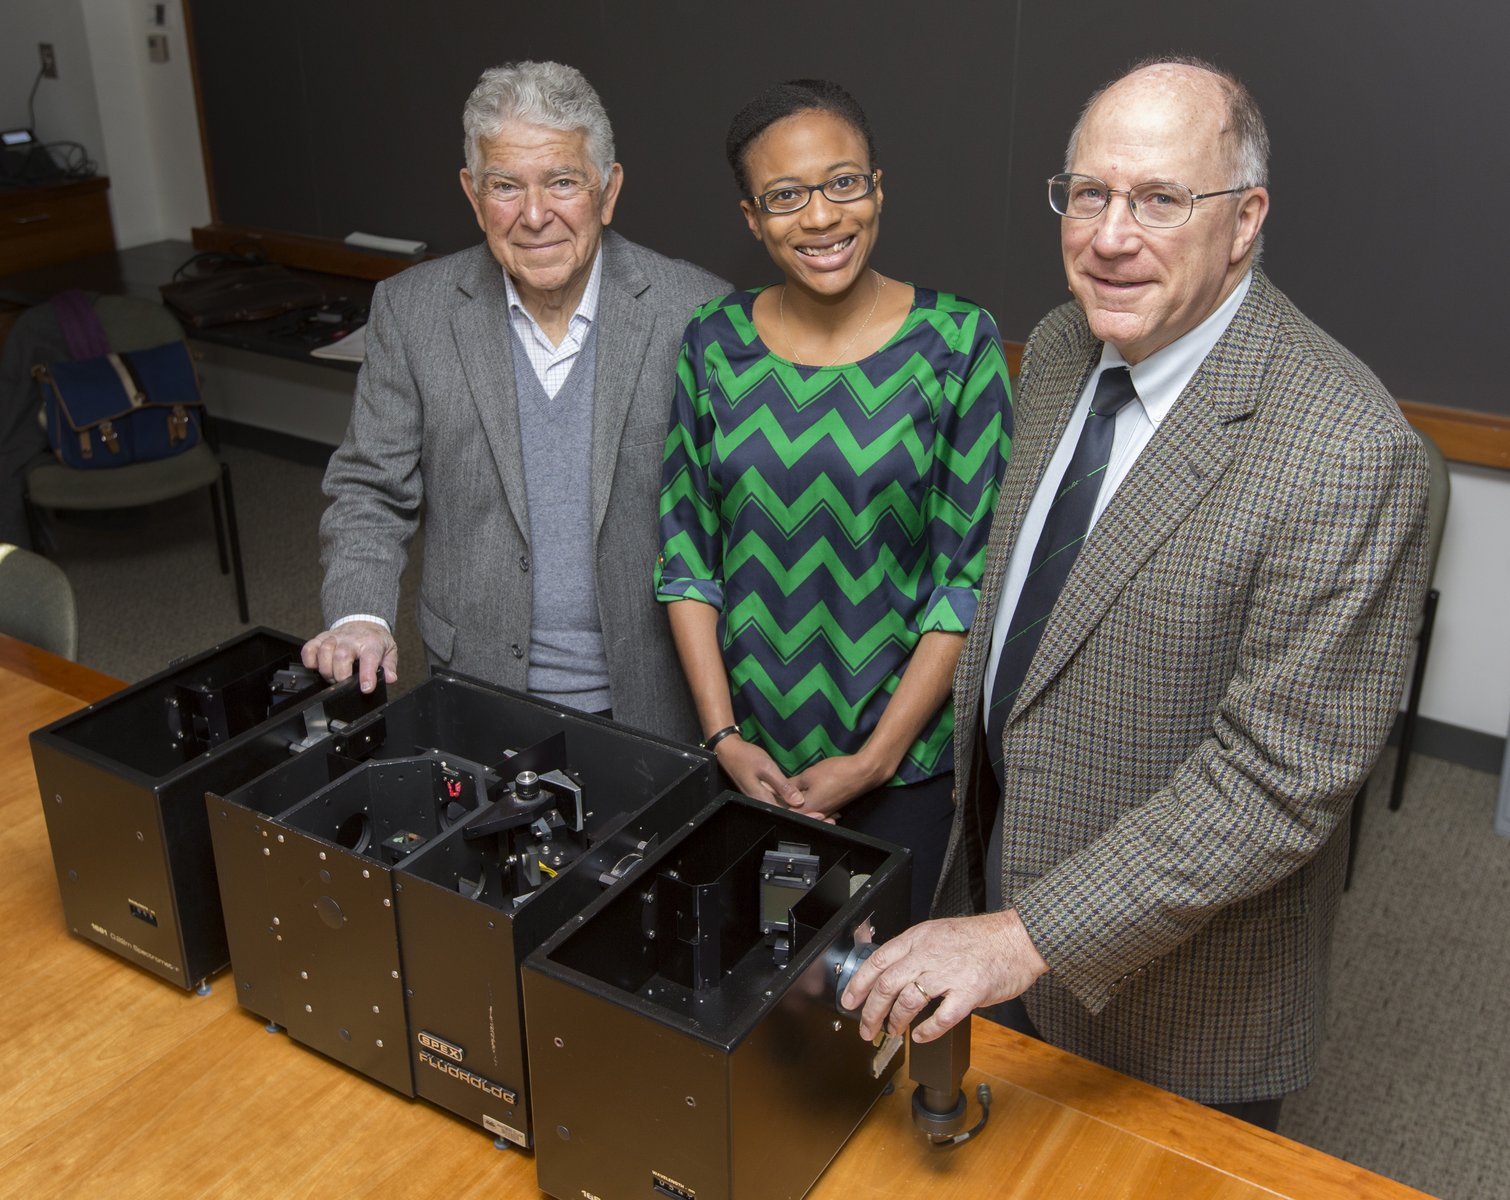 Bob Pasternack, Stephanie Lampkins of the Chemical Heritage Foundation, and Peter Collings with the historically significant SPEX Fluorolog Spectrometer.